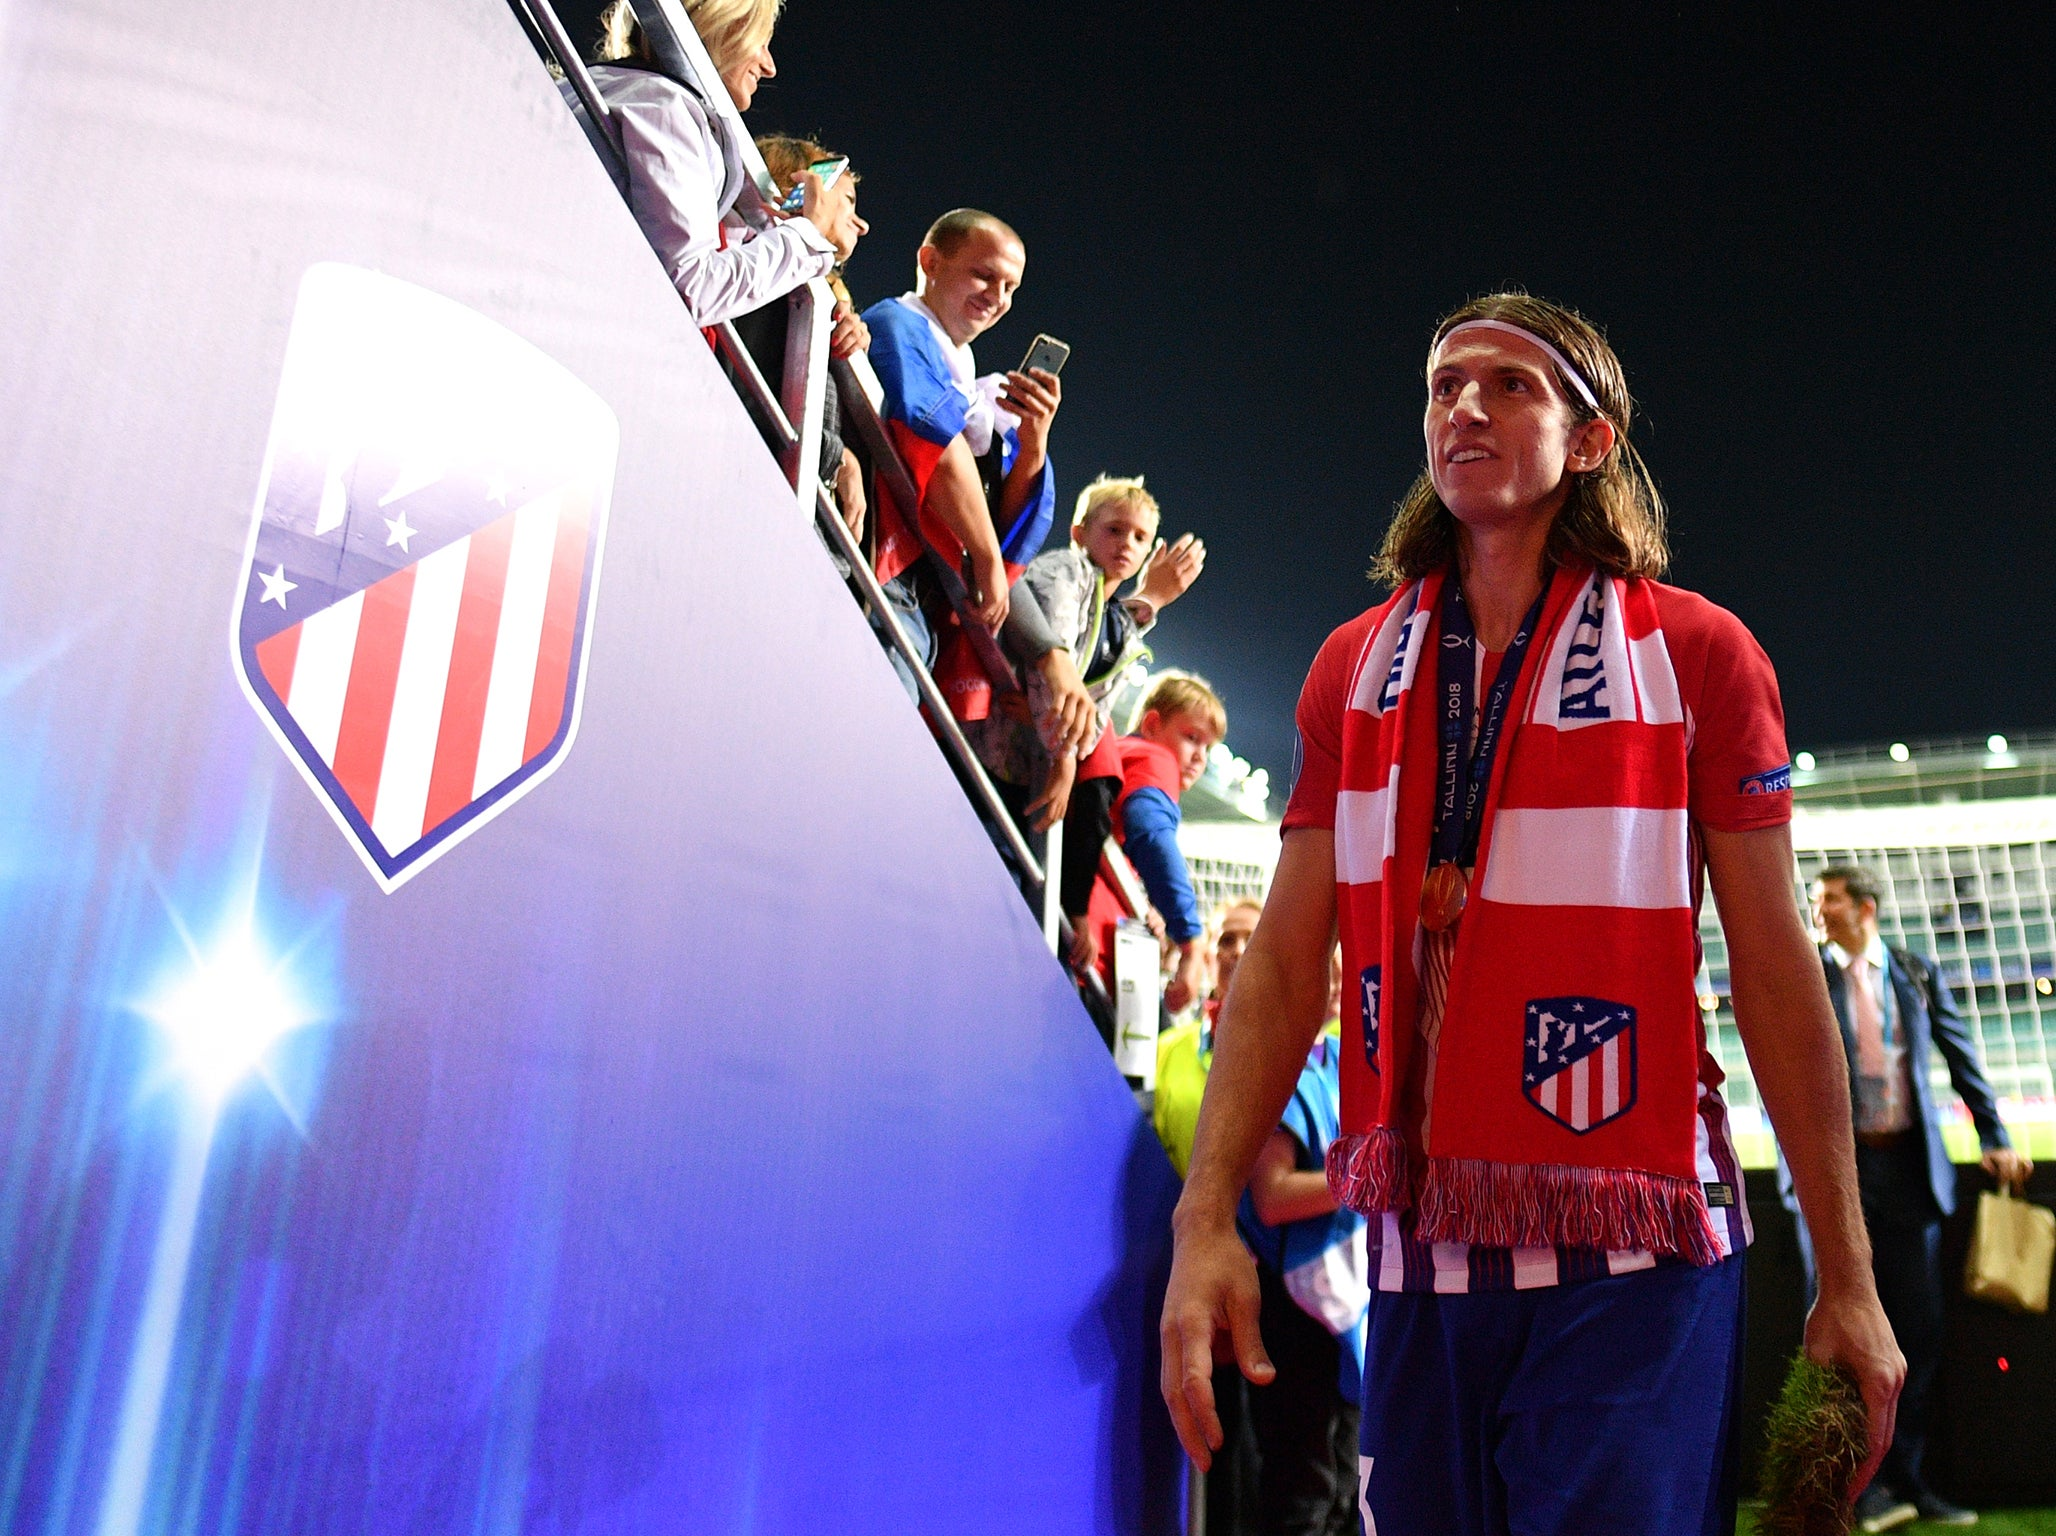 Filipe Luis transfer news: Atletico Madrid boss Diego Simeone hopes defender will not be sold to Paris Saint-Germain